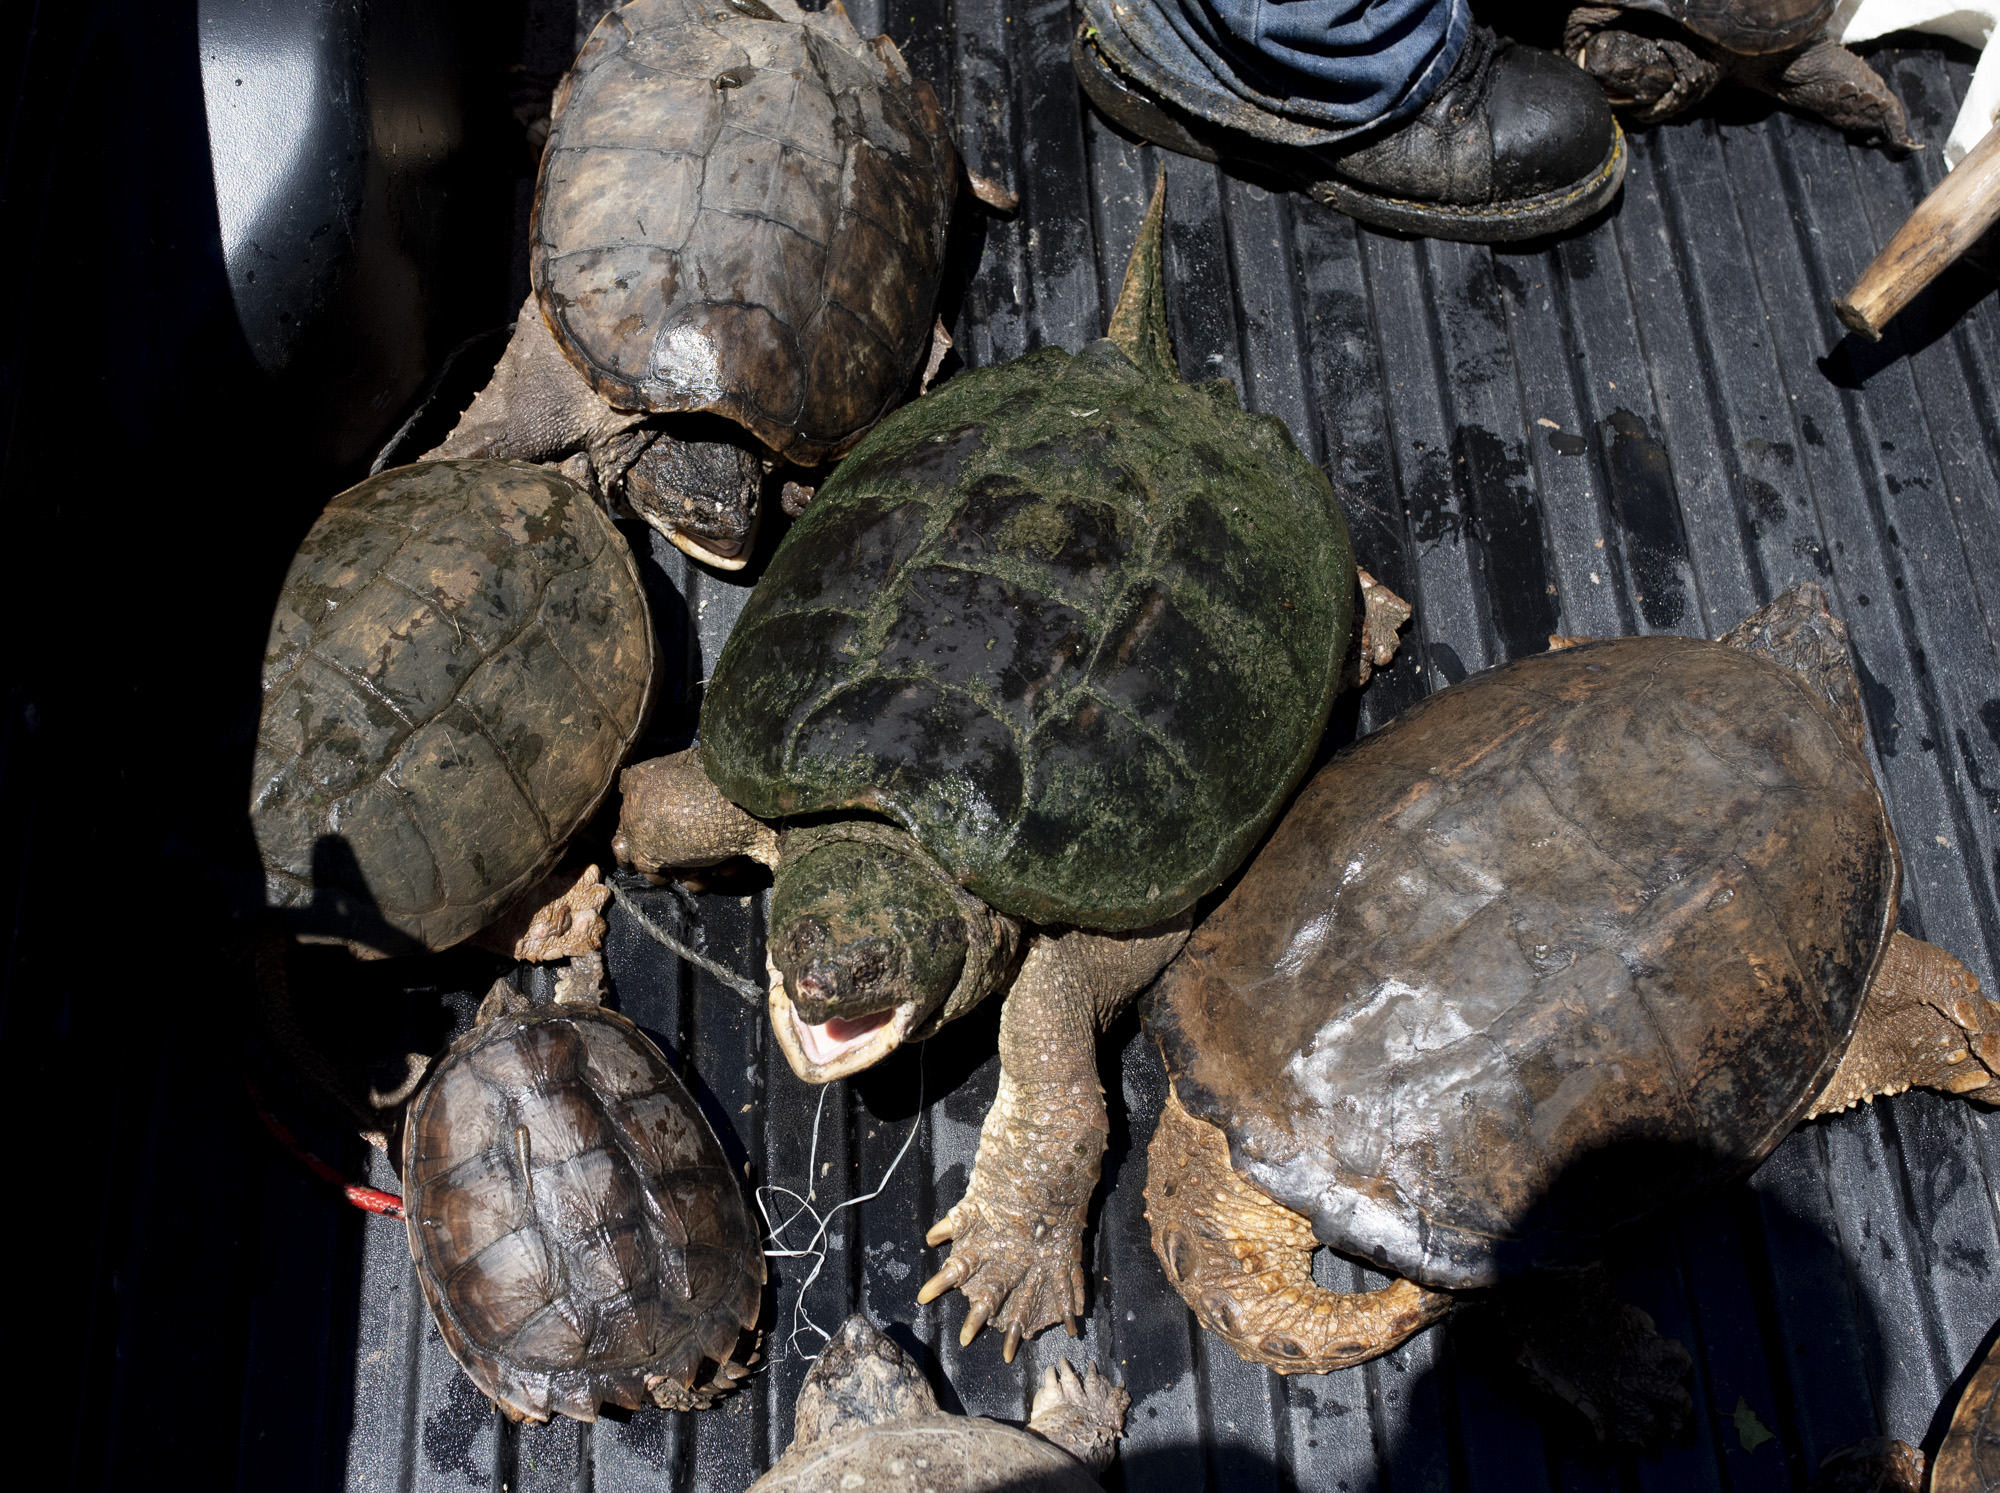 Snapping turtles hiss in the back of Joe Clemen's truck on July 7, 2018. The Clemens at the end of the day normally release the turtles back into the creek after taking photos with the turtles.